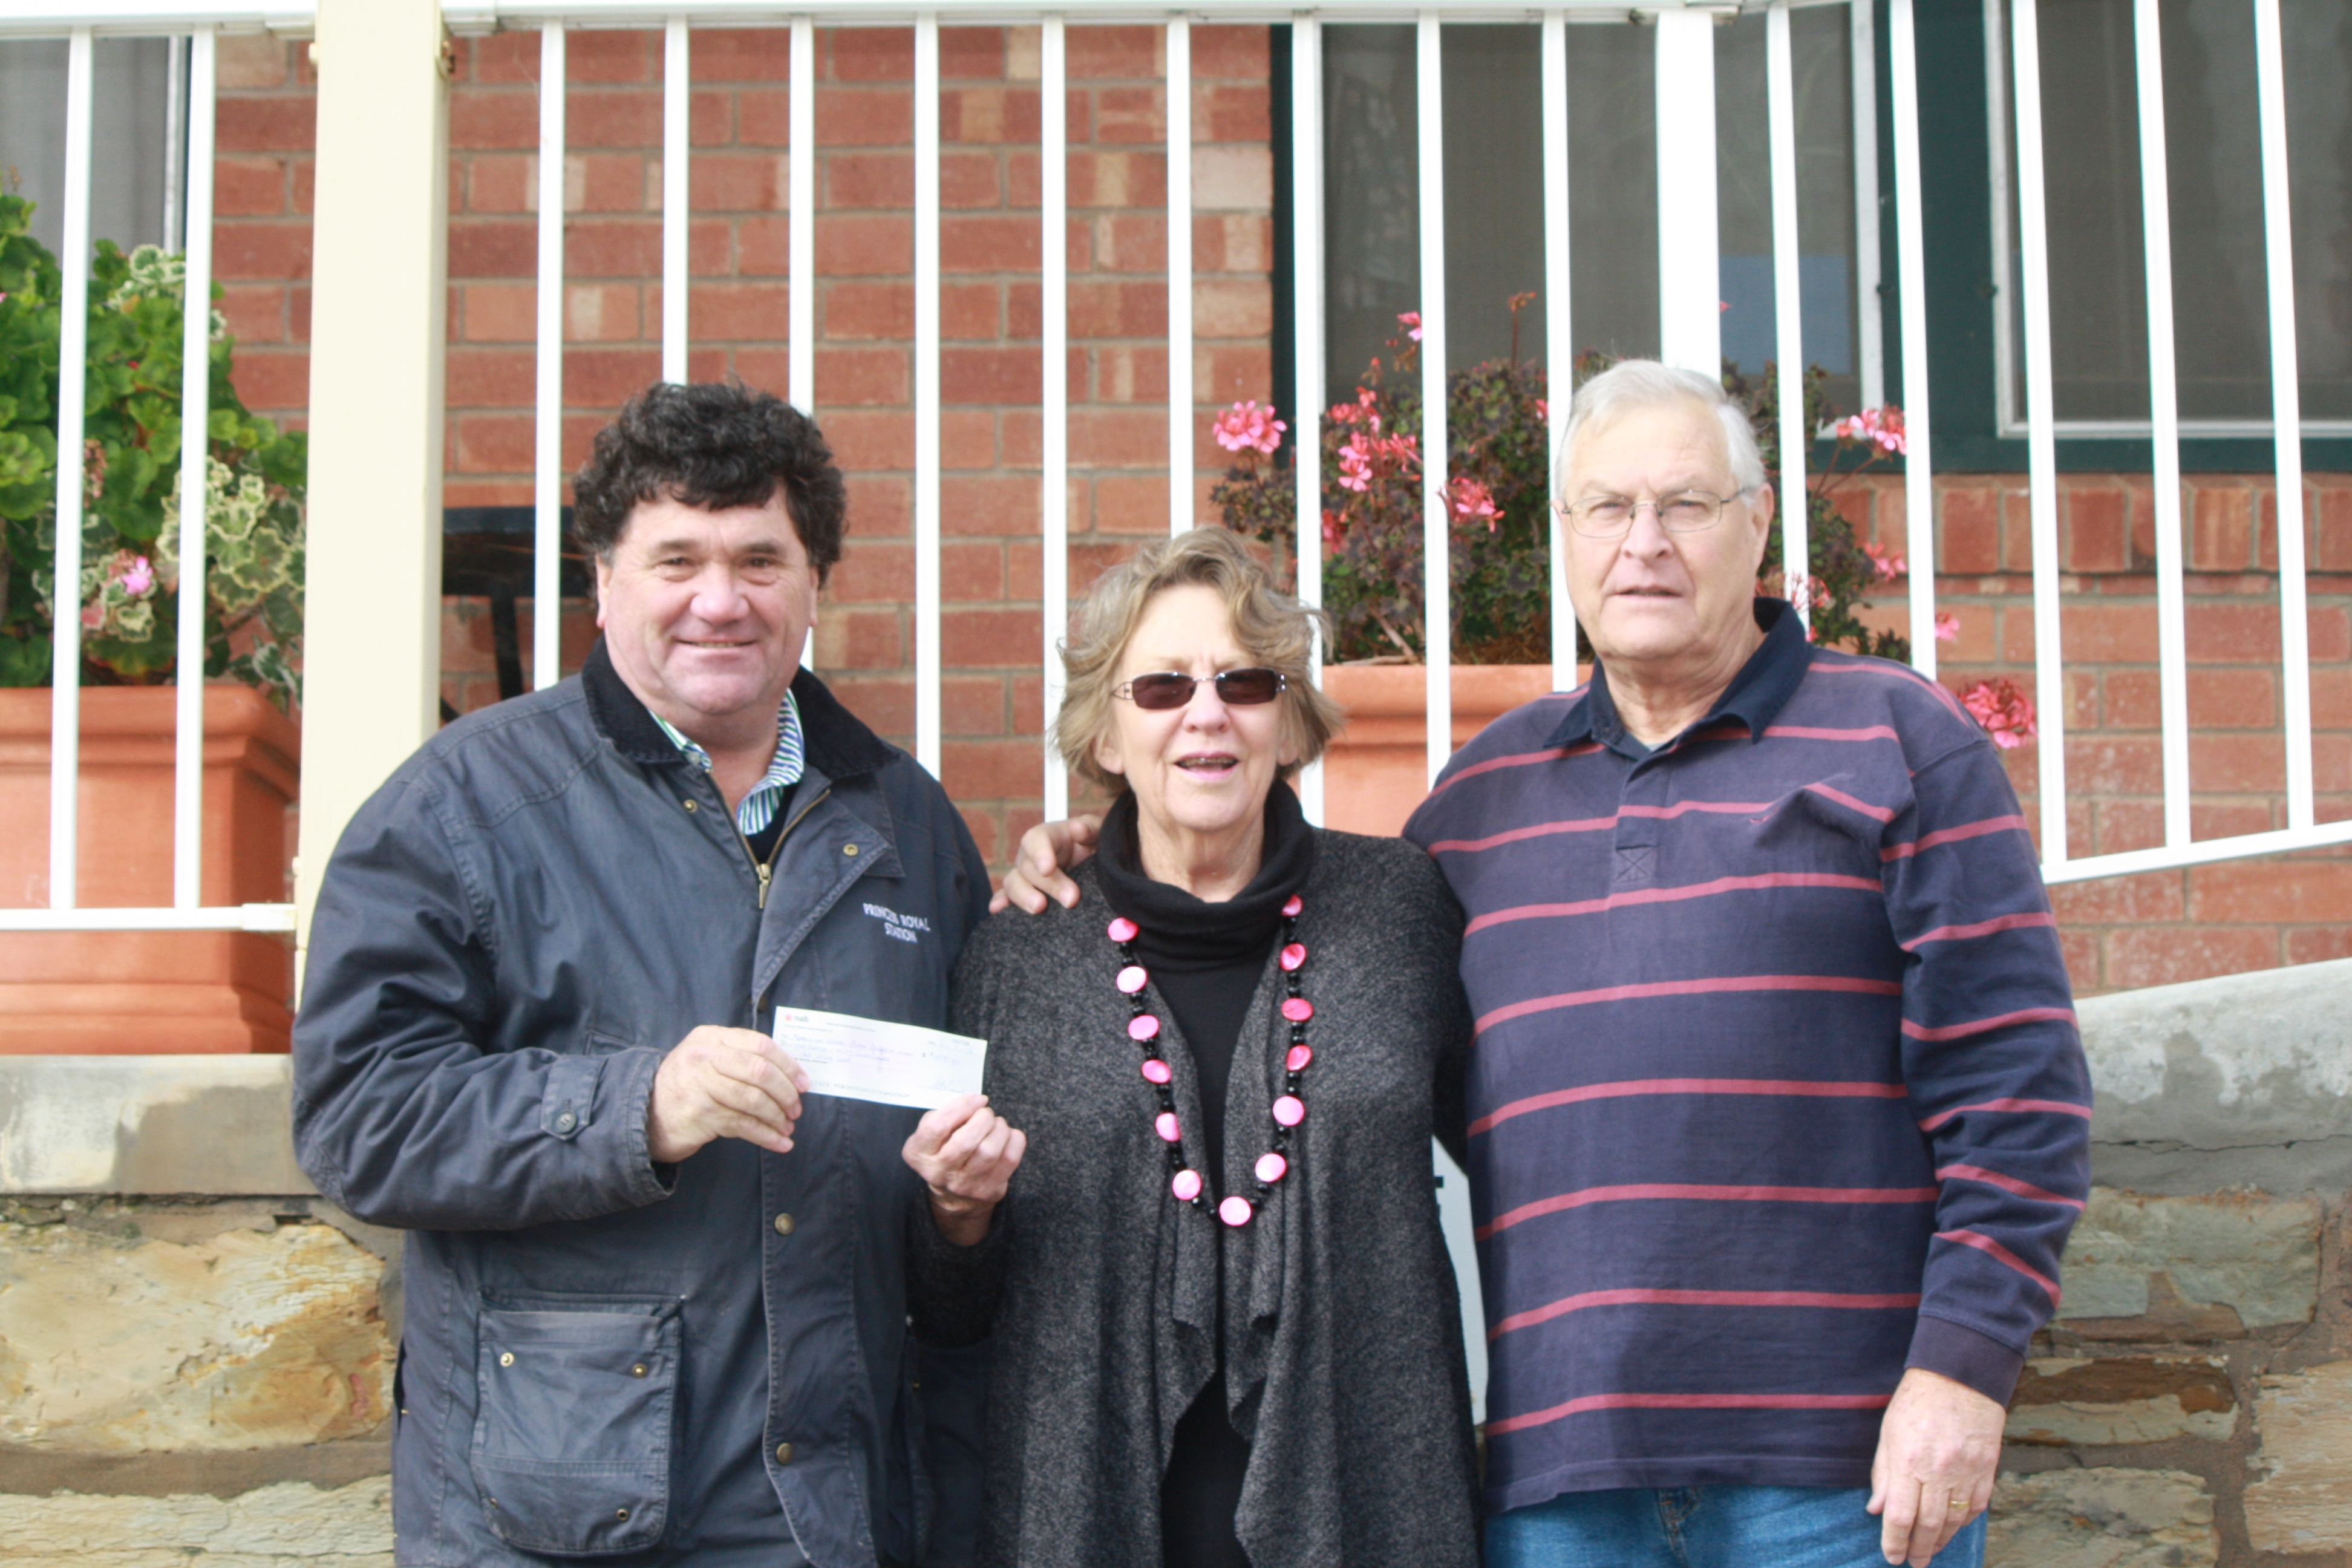 Princess Royal Station's Simon Rowe hands over the cheque to Meals on Wheels Burra chair Bev Fleming and treasurer Peter Ferris.